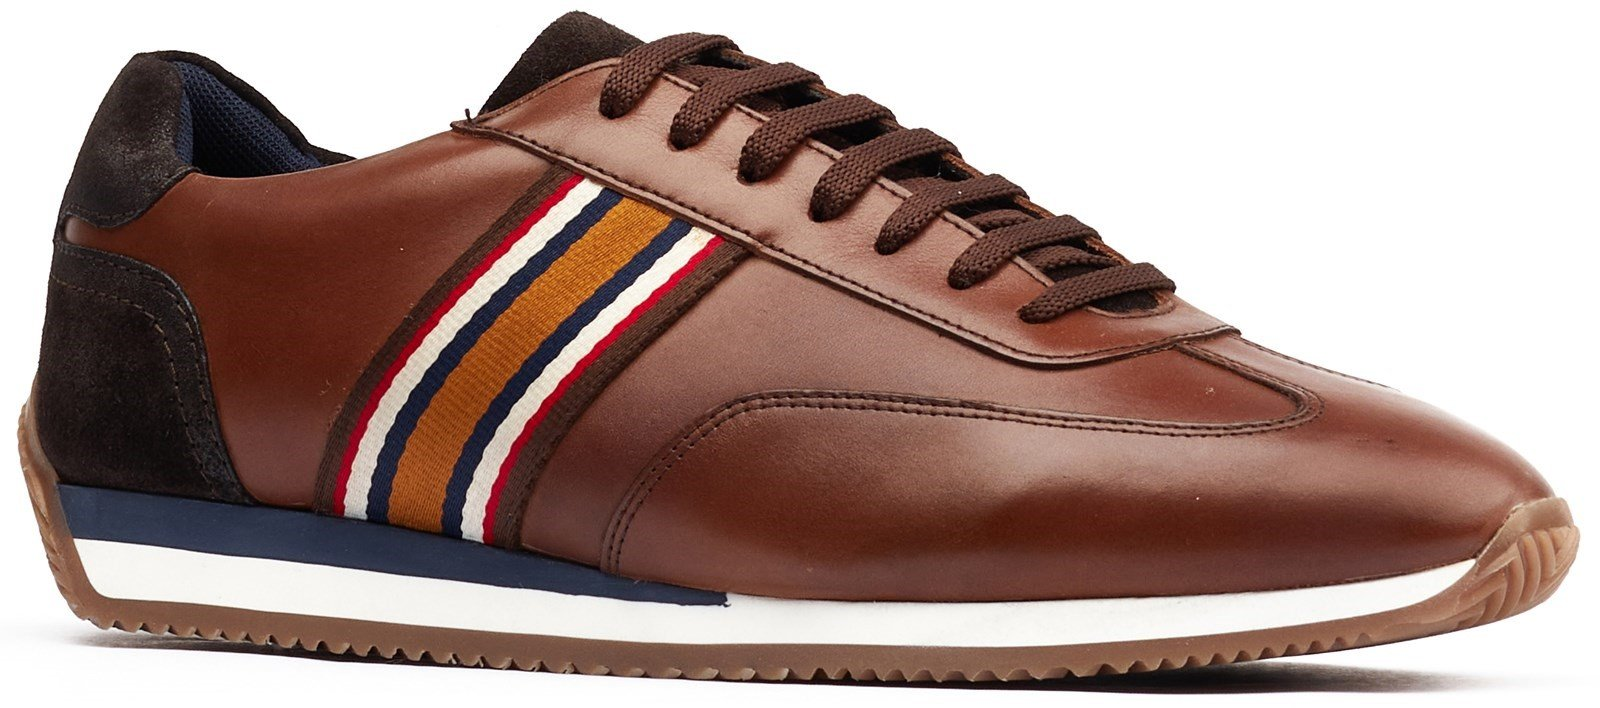 Base London Men's Mayo Lace Up Trainer Various Colours 32259 - Brown 7